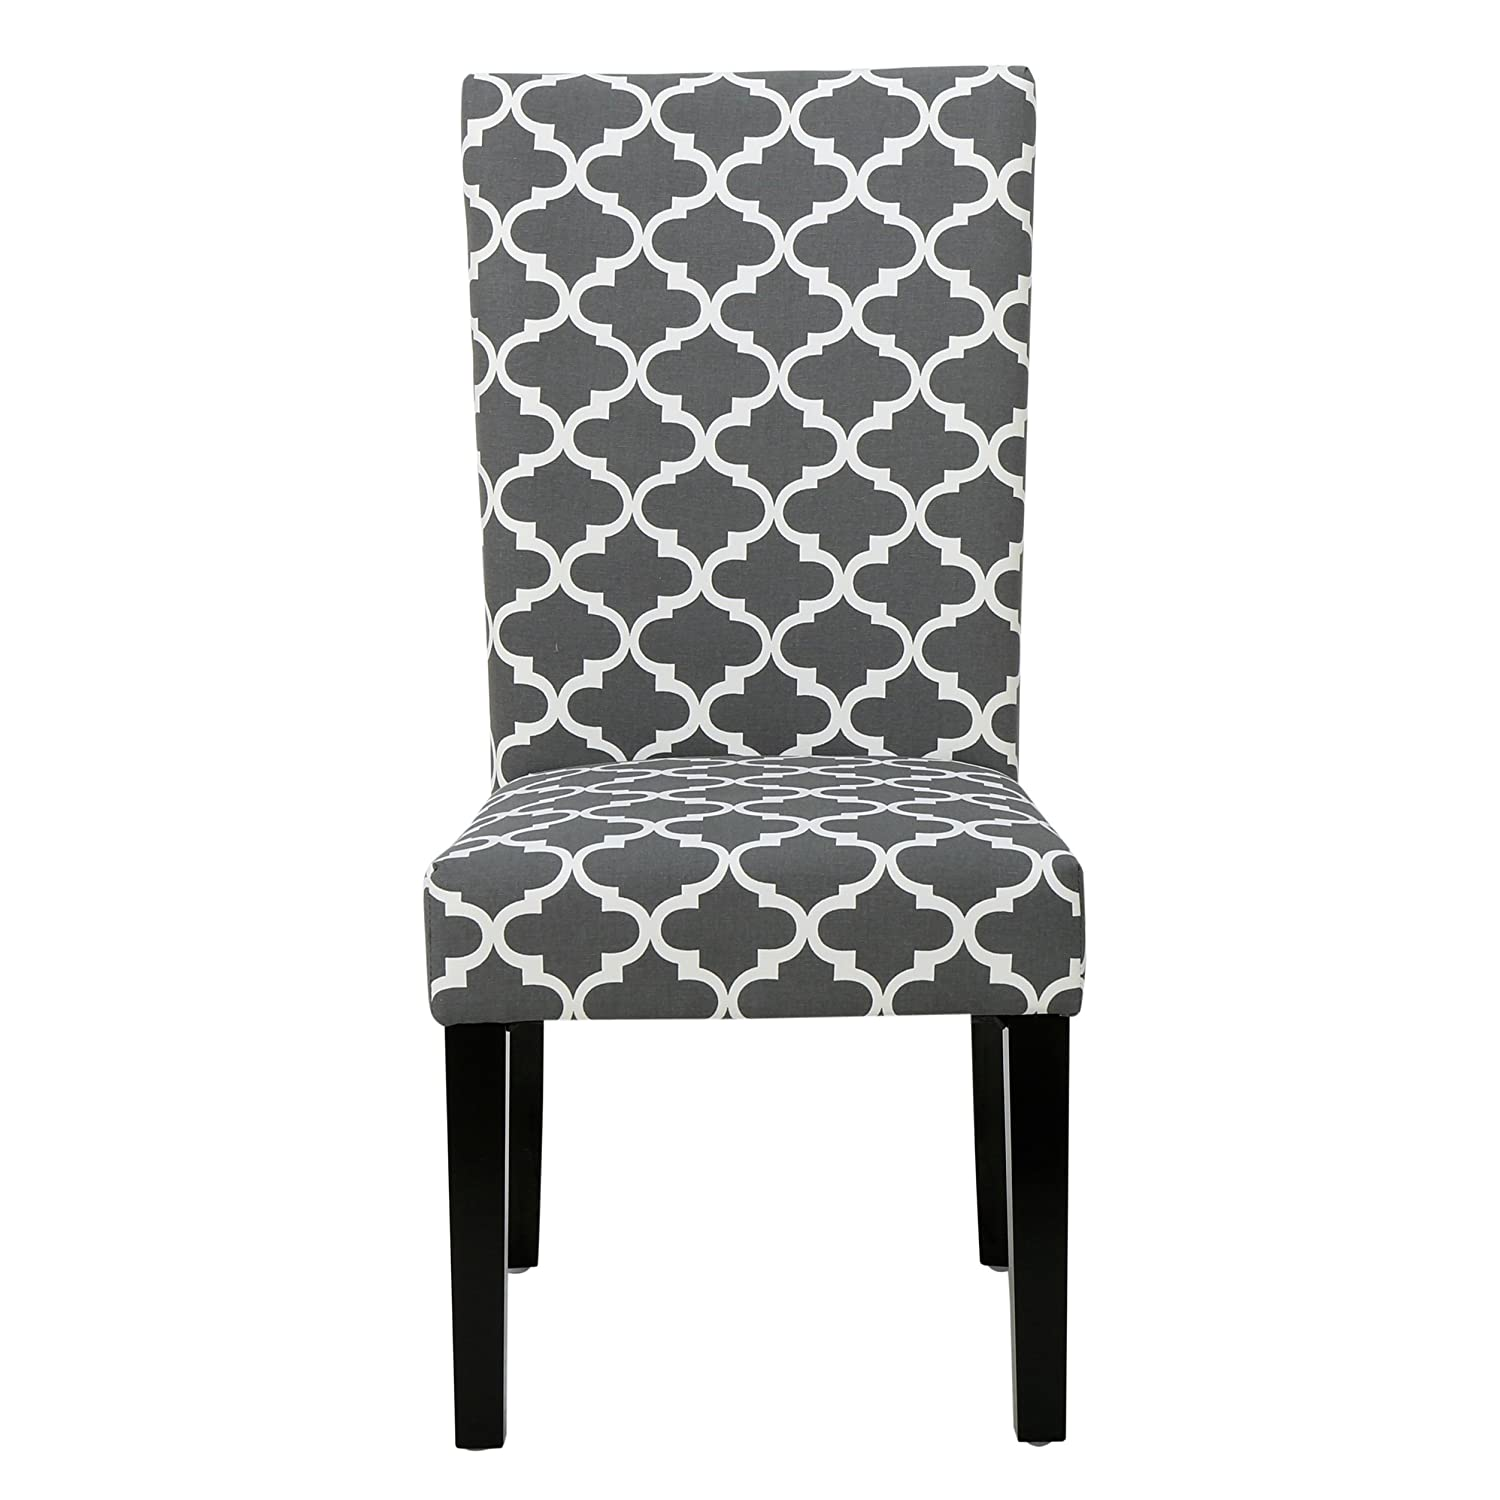 Beau Amazon.com   ModHaus Living Modern Fabric Moroccan Quatrefoil Pattern  Parsons Style Dining Chairs   Wood   Chairs